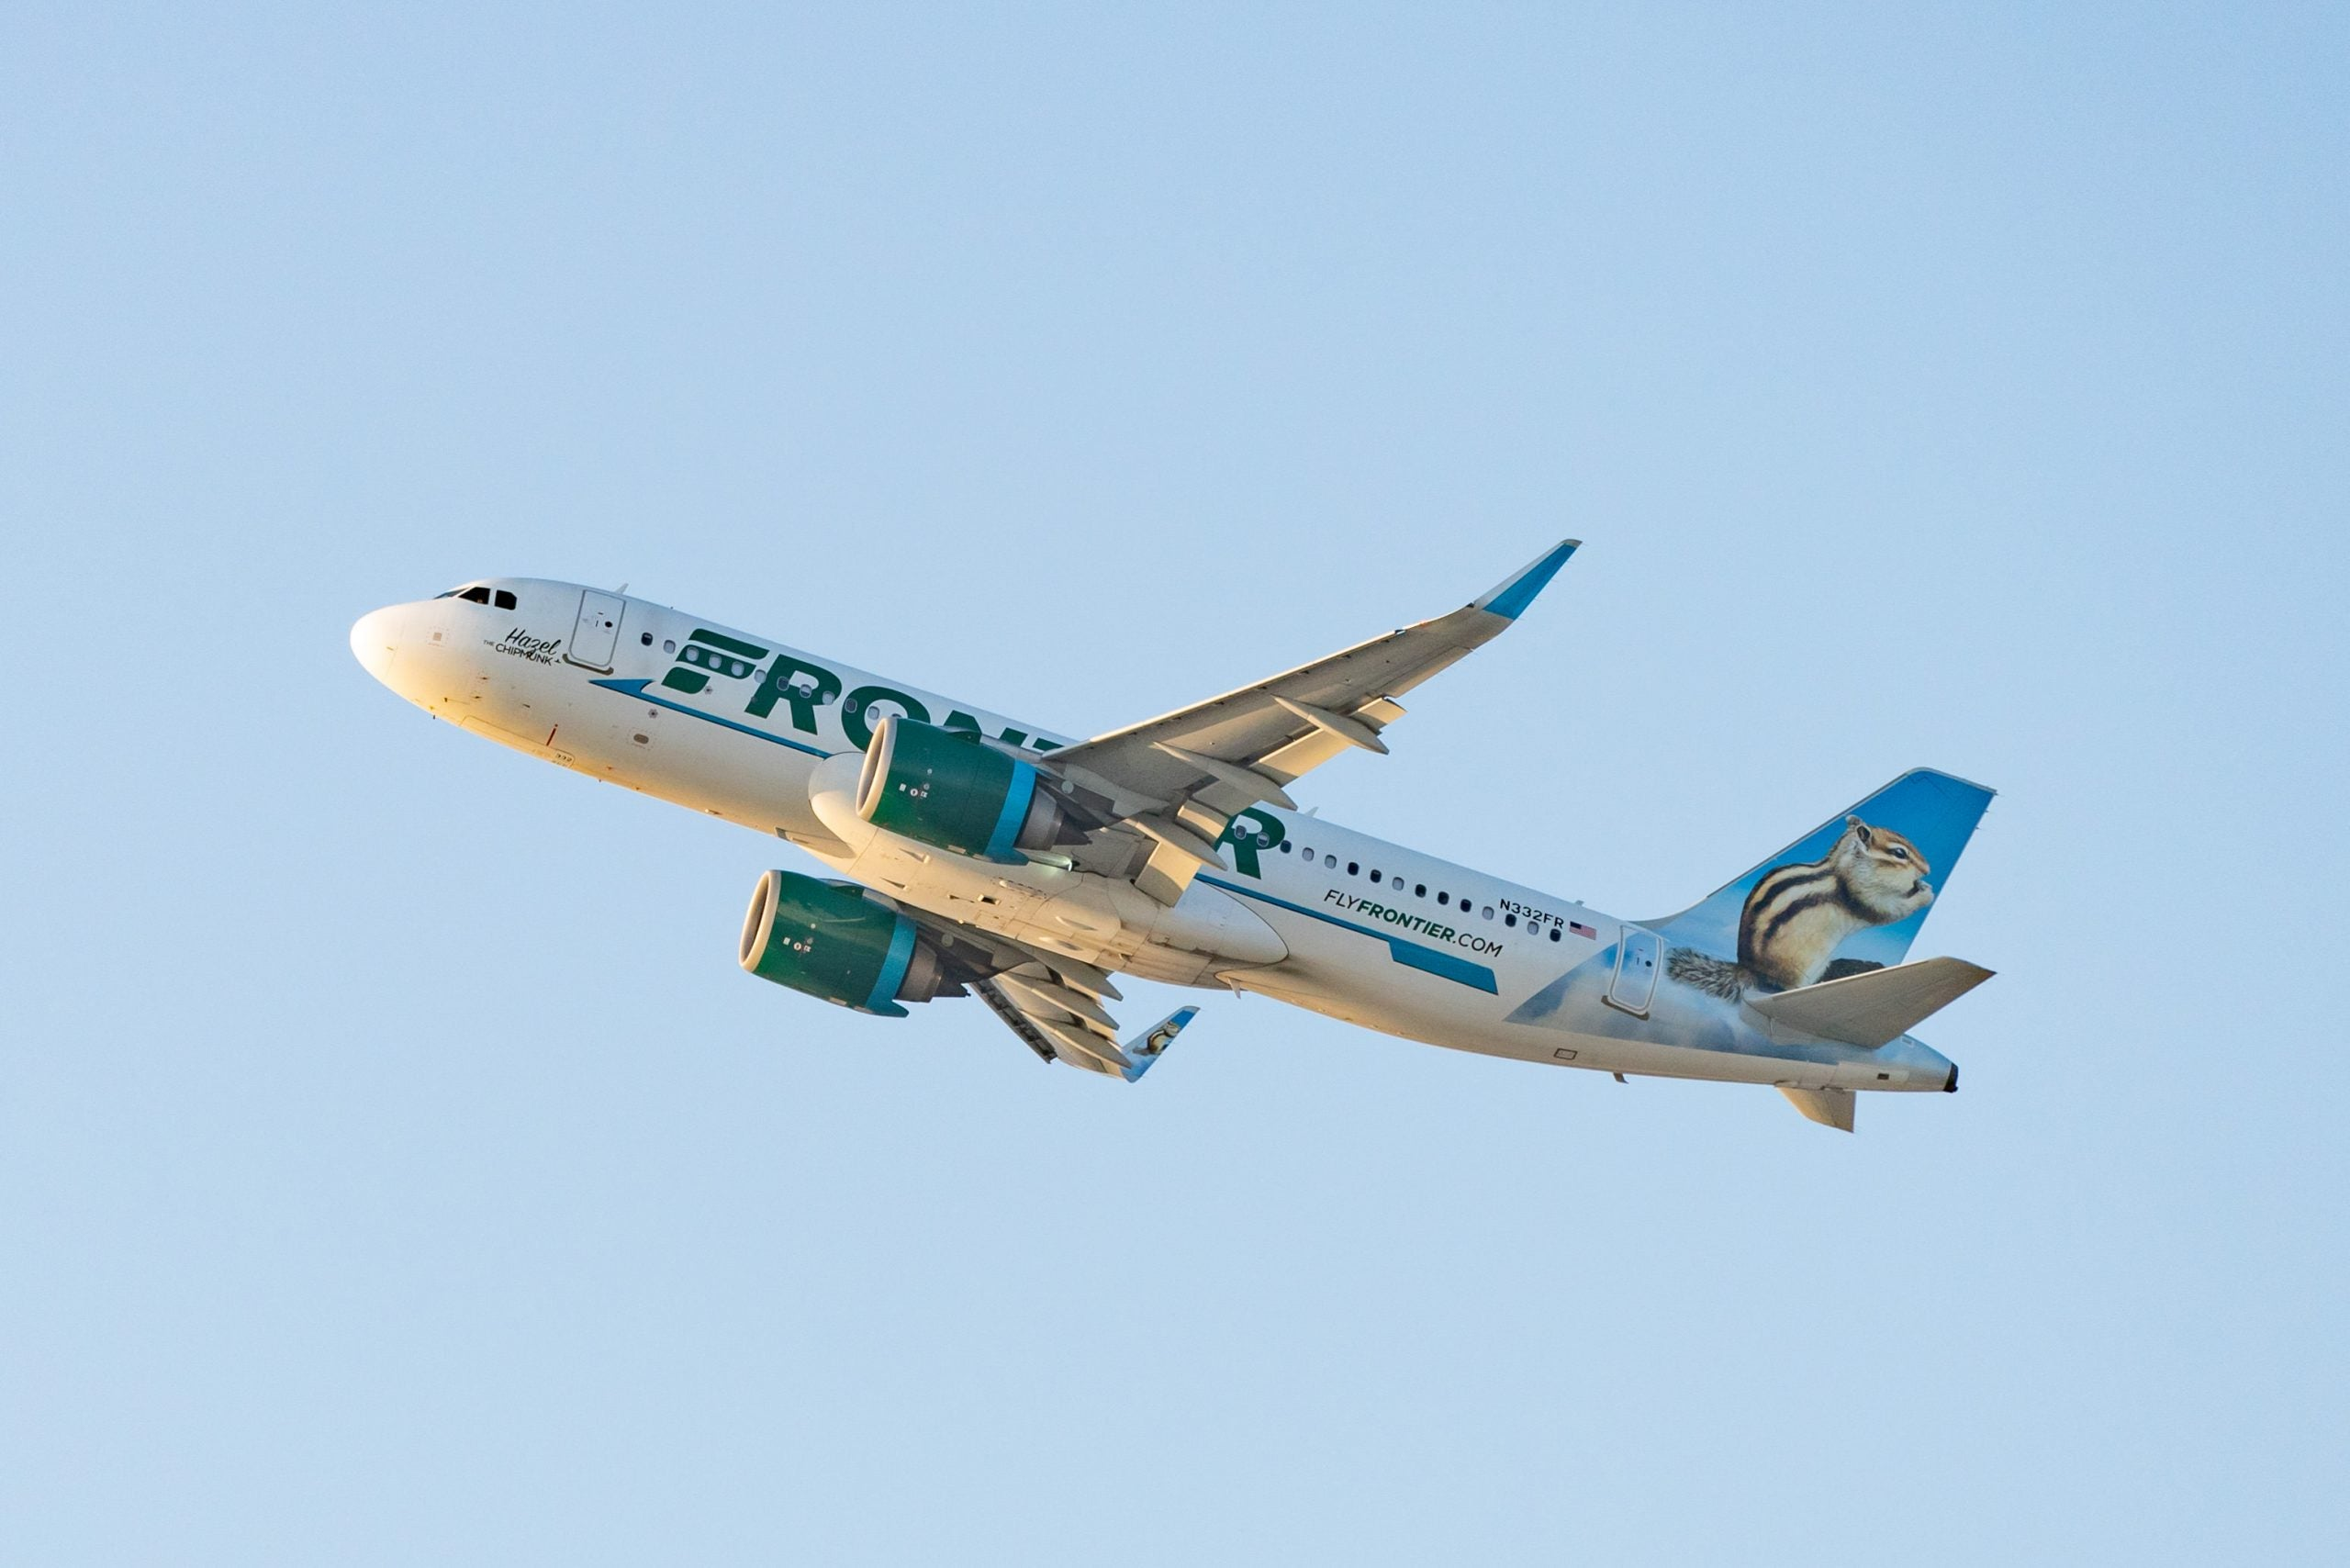 Travel is back: Frontier Airlines adds a new mandatory 'Covid Recovery' fee, ends temperature checks